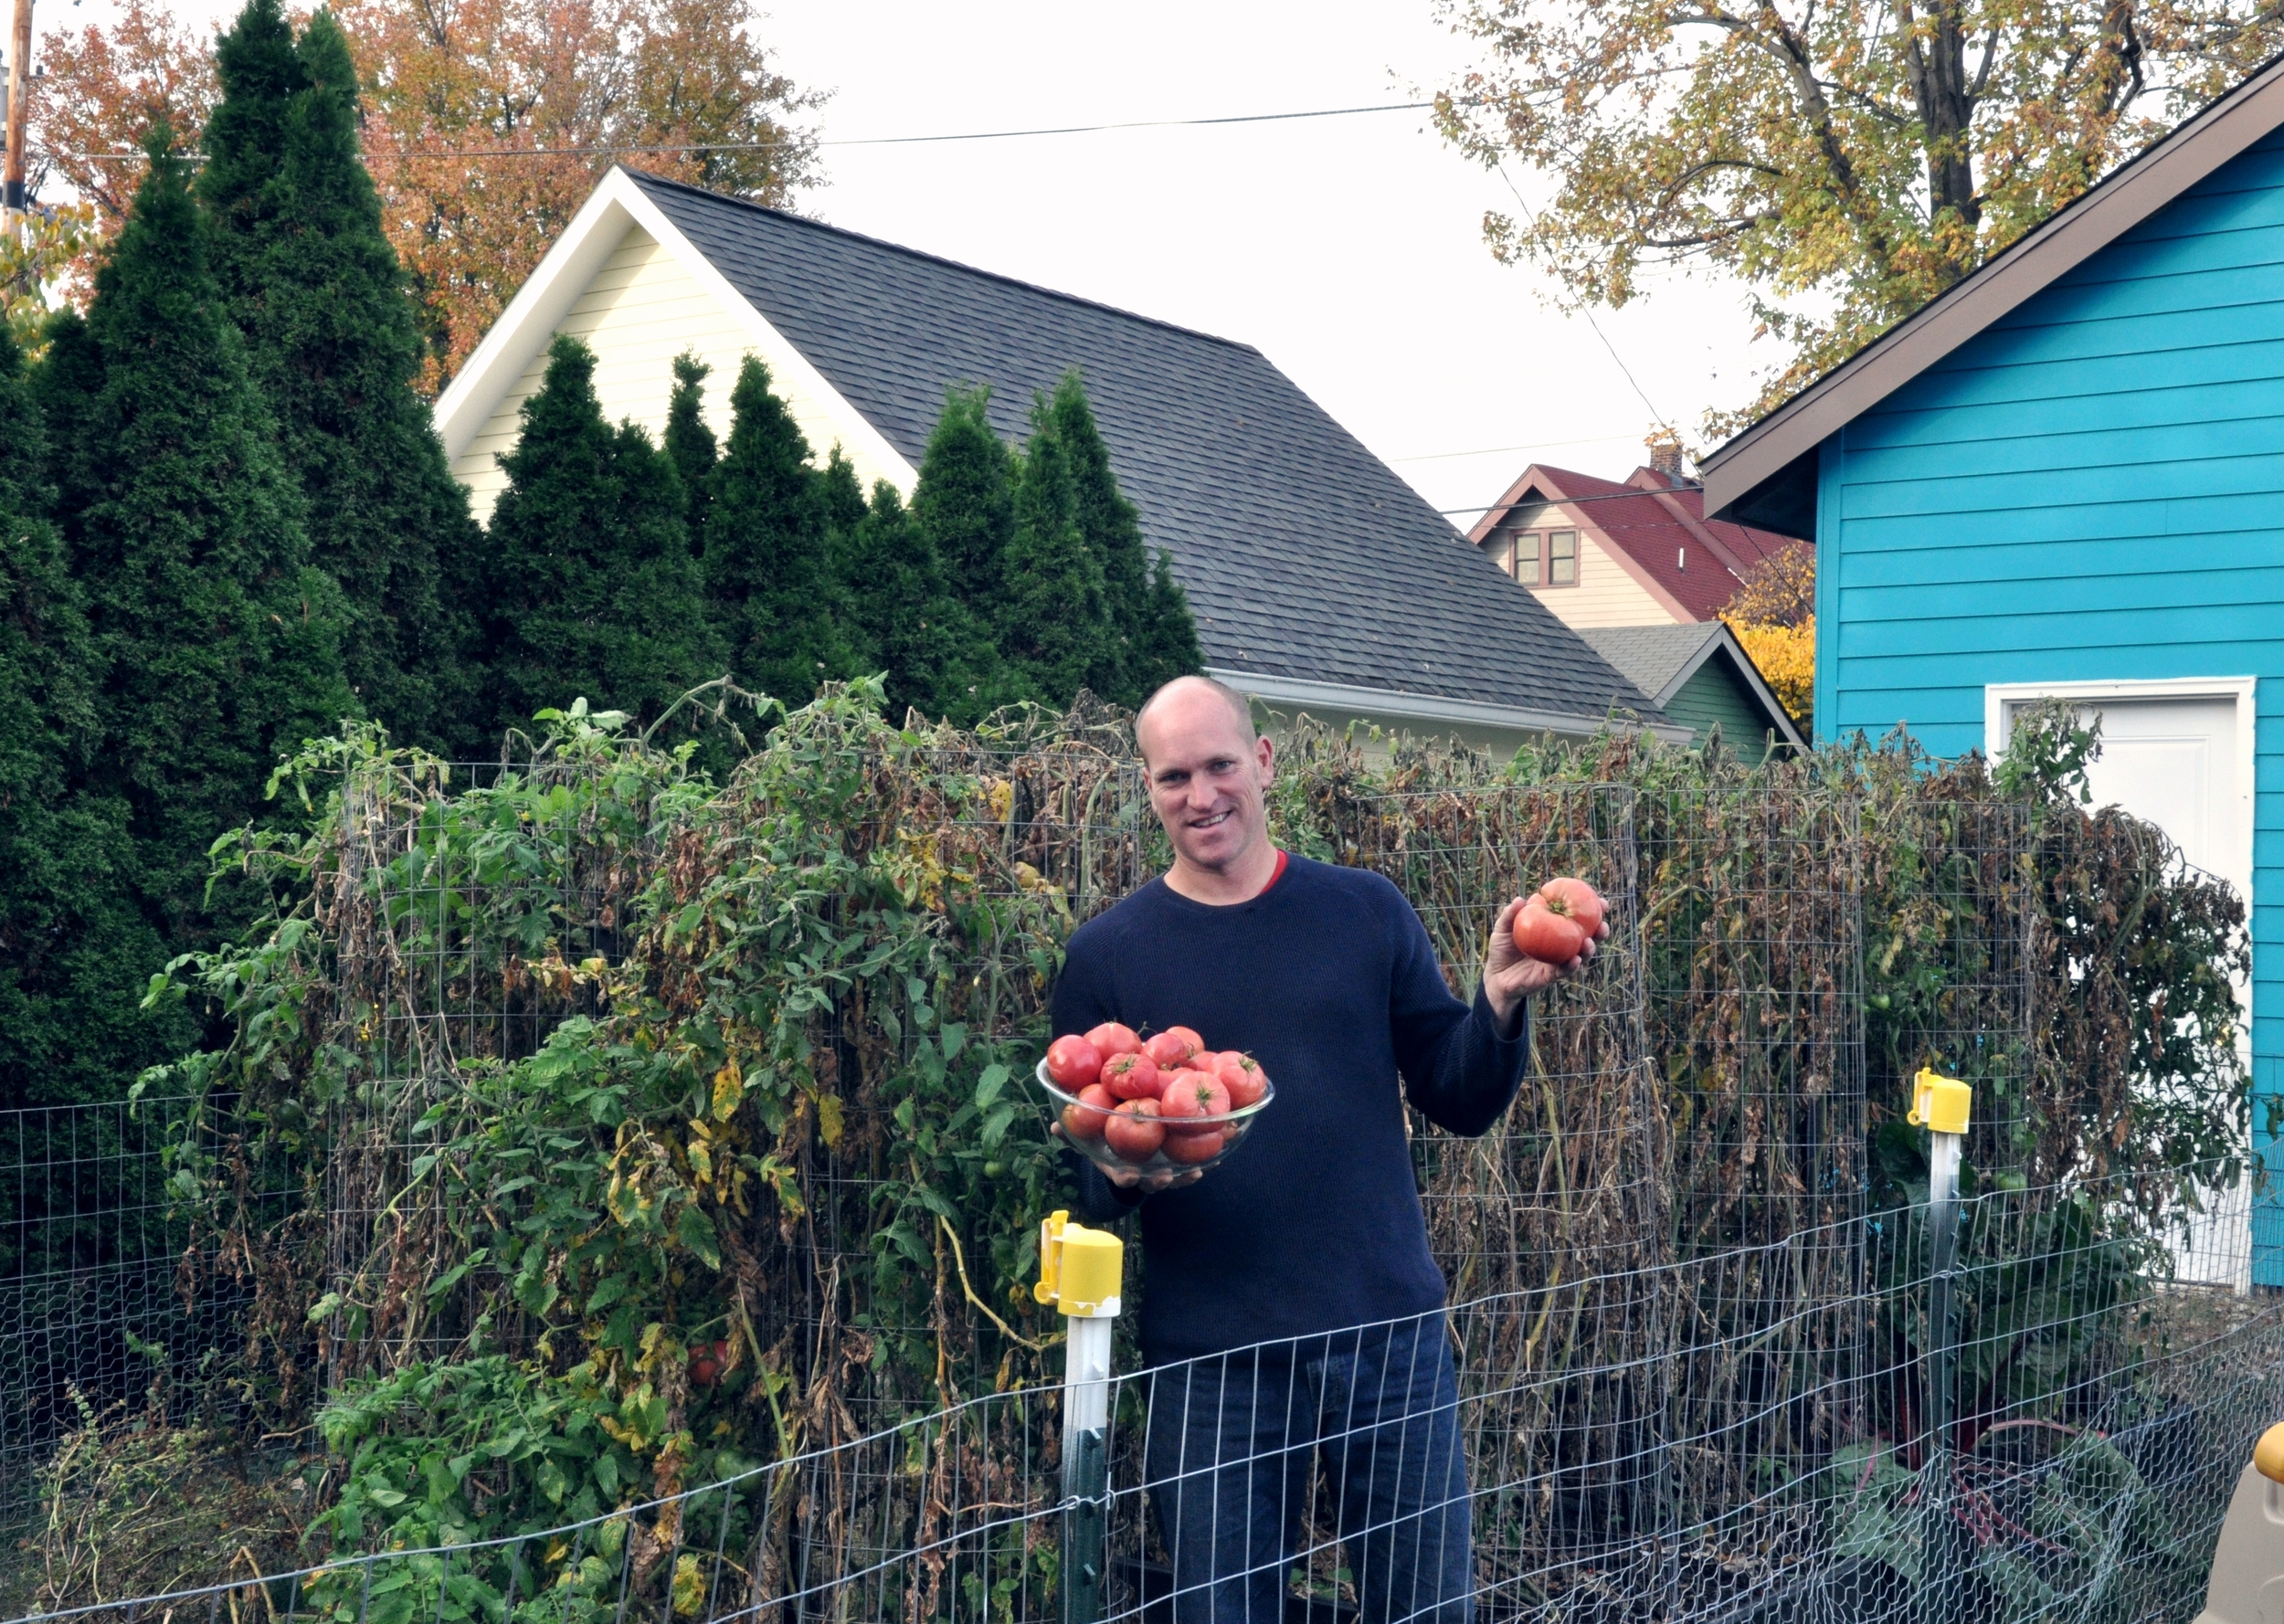 Pete displays a sampling of the tomato harvest from his new and larger, sunnier garden.